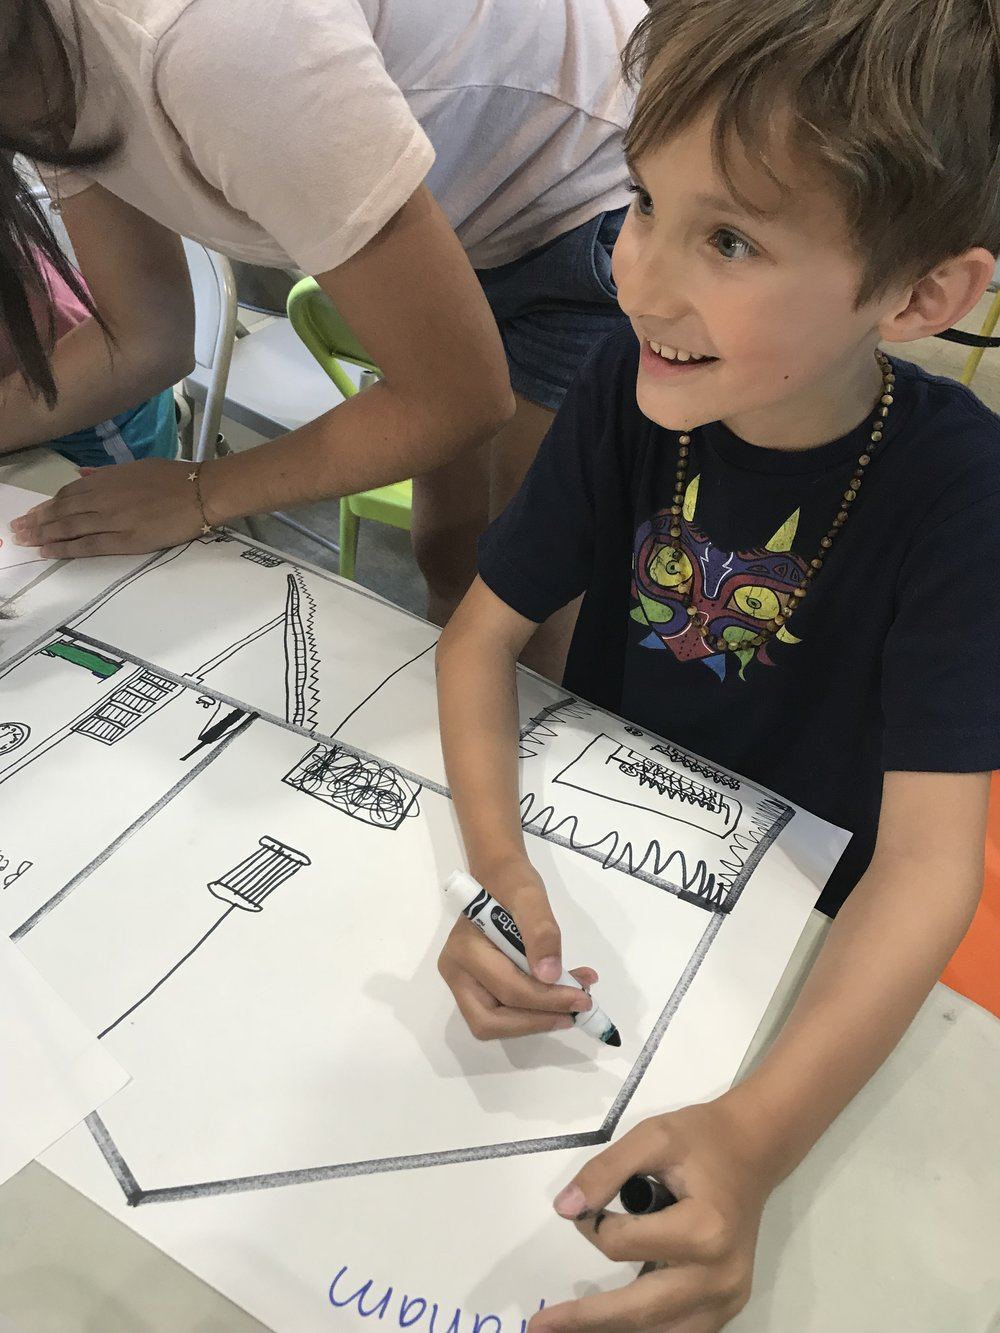 Working on blueprints and floor plans for our miniature houses.